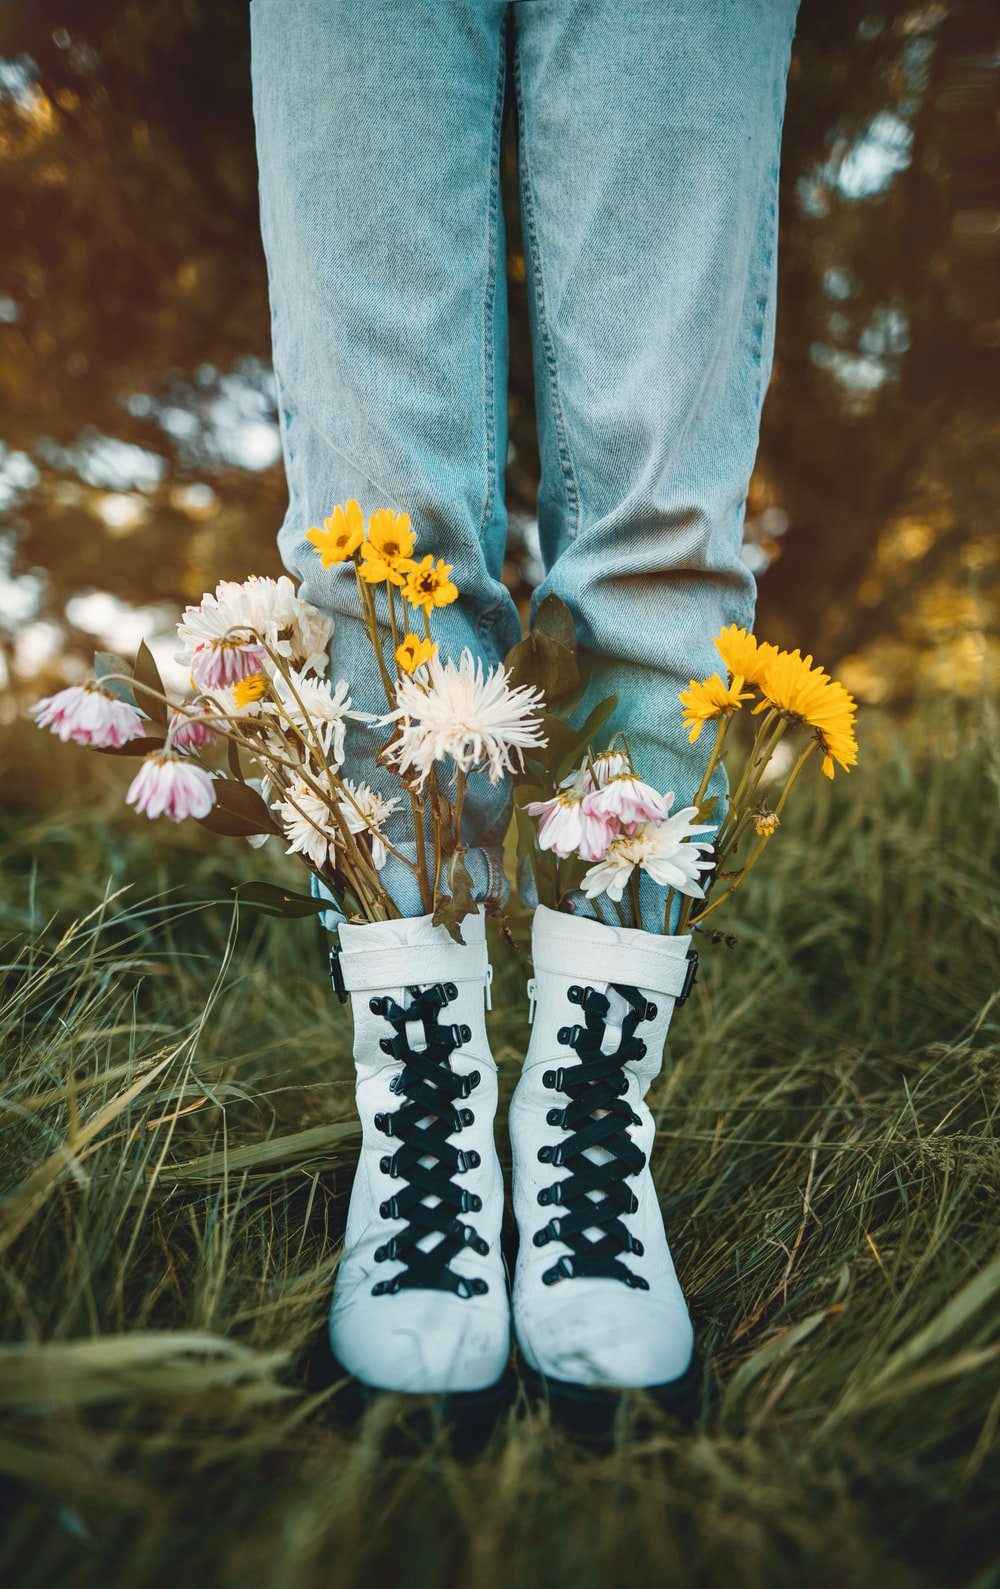 person in blue denim jeans and white and black boots holding white and yellow flowers